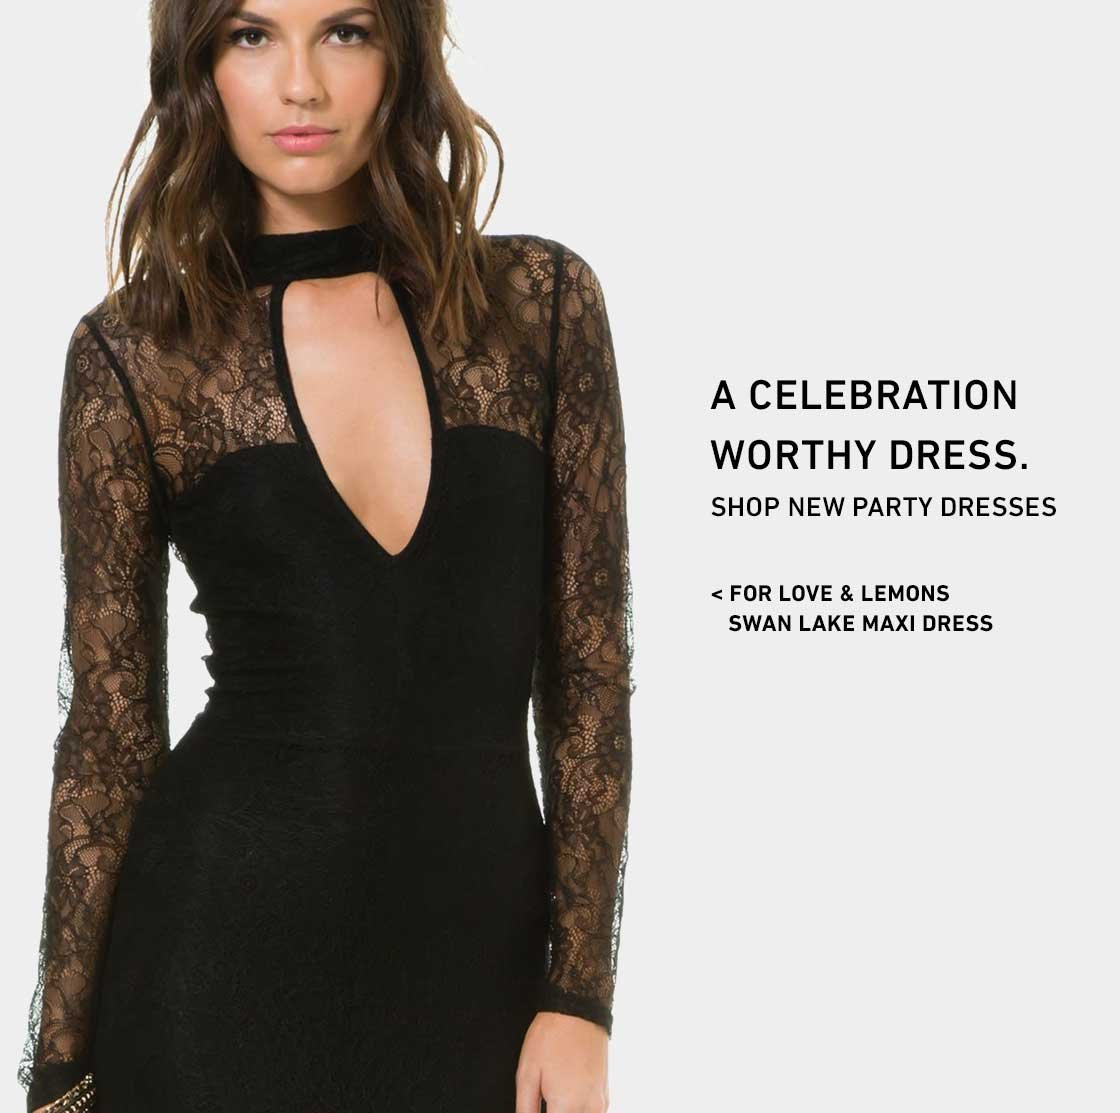 Shop New Party Dresses